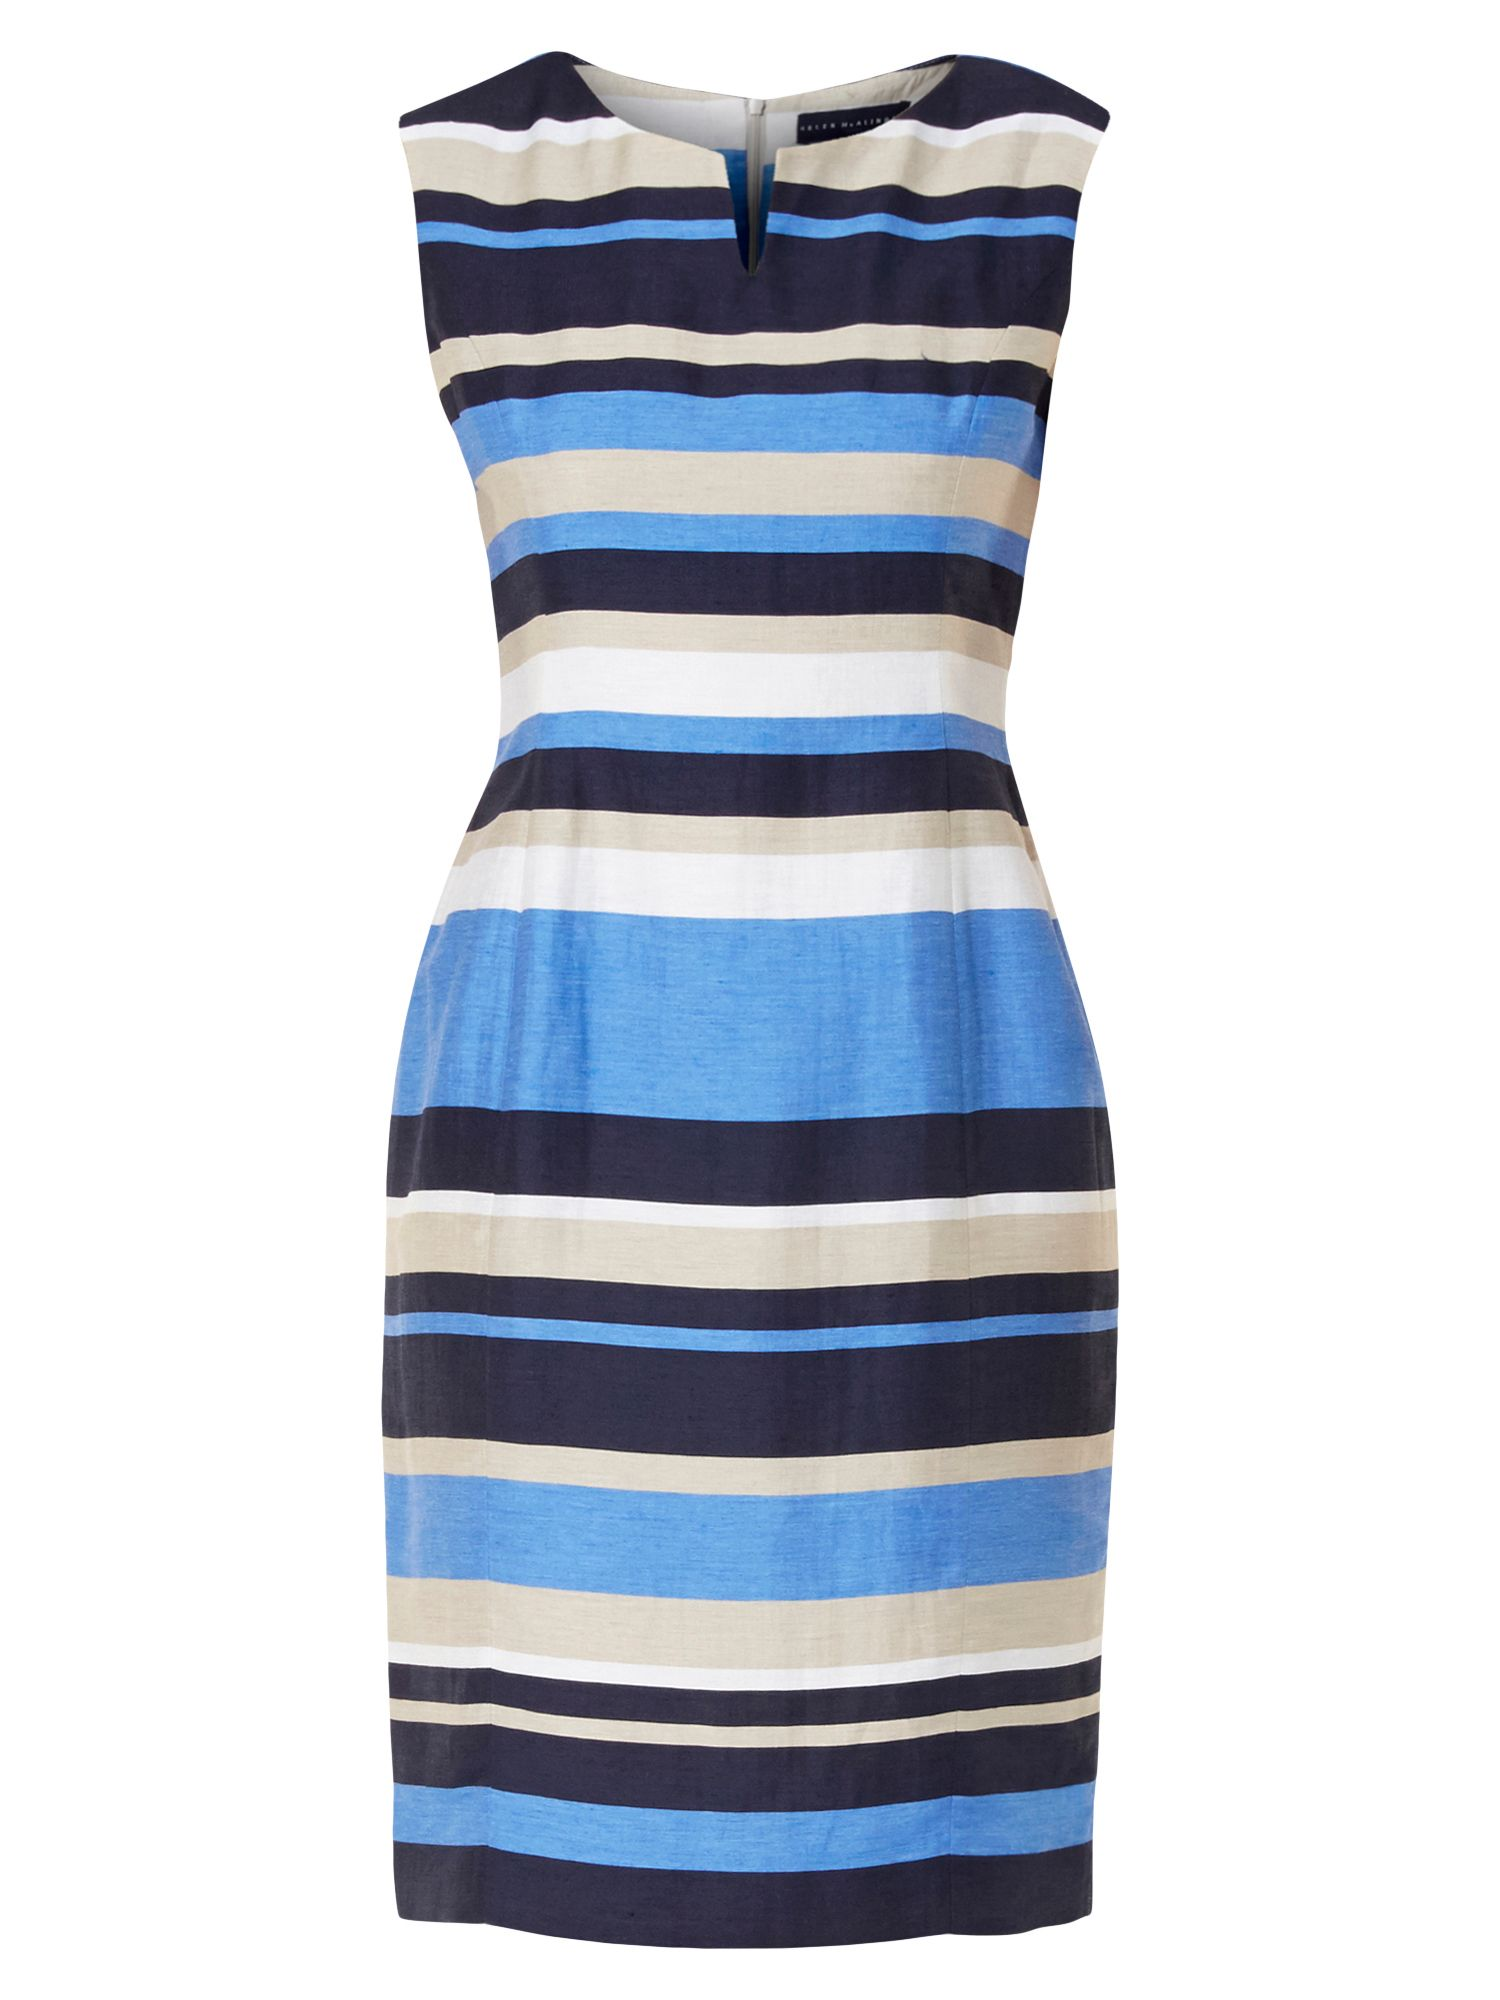 Helen McAlinden Tessa Dress, Blue